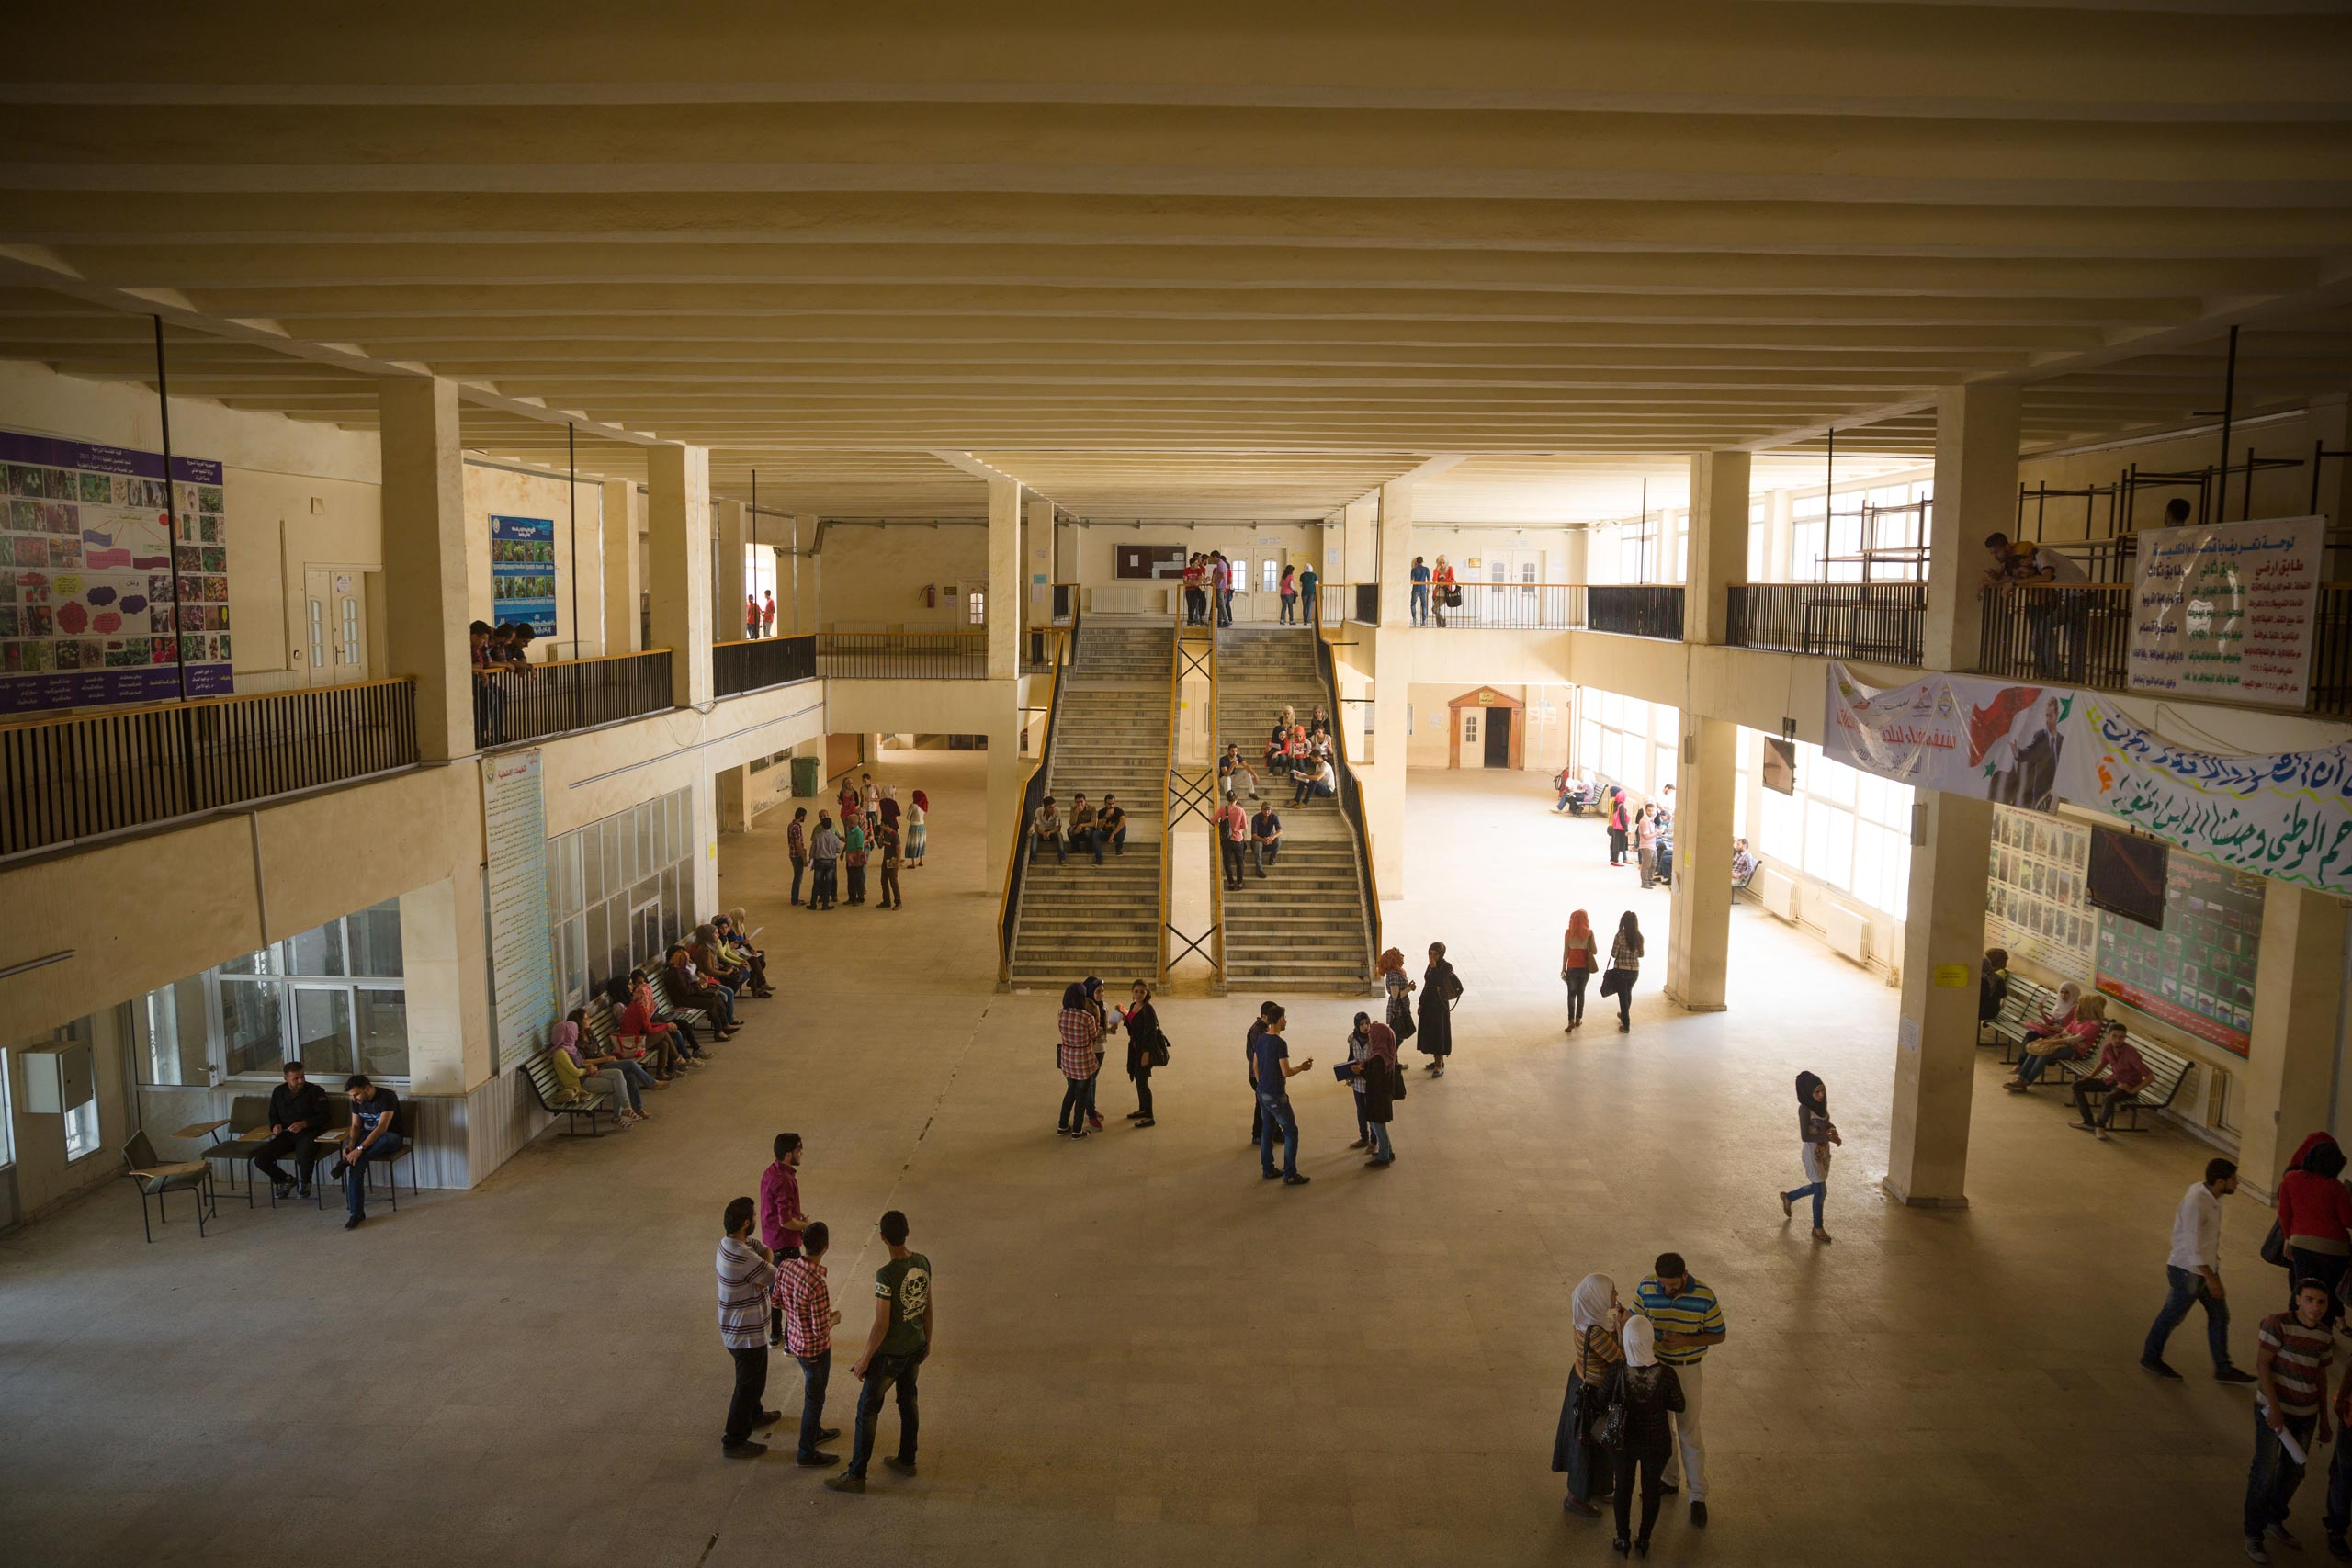 Normality alternates with anxiety in Deir-ez Zor. Thousands of students attend the university and the schools remain open, while Syrian troops battle ISIS in surrounding areas of the city. In April 2015, the United Nations added Deir-ez Zor, with its population of 228,000, to the list of besieged Syrian cities, May 24, 2015.